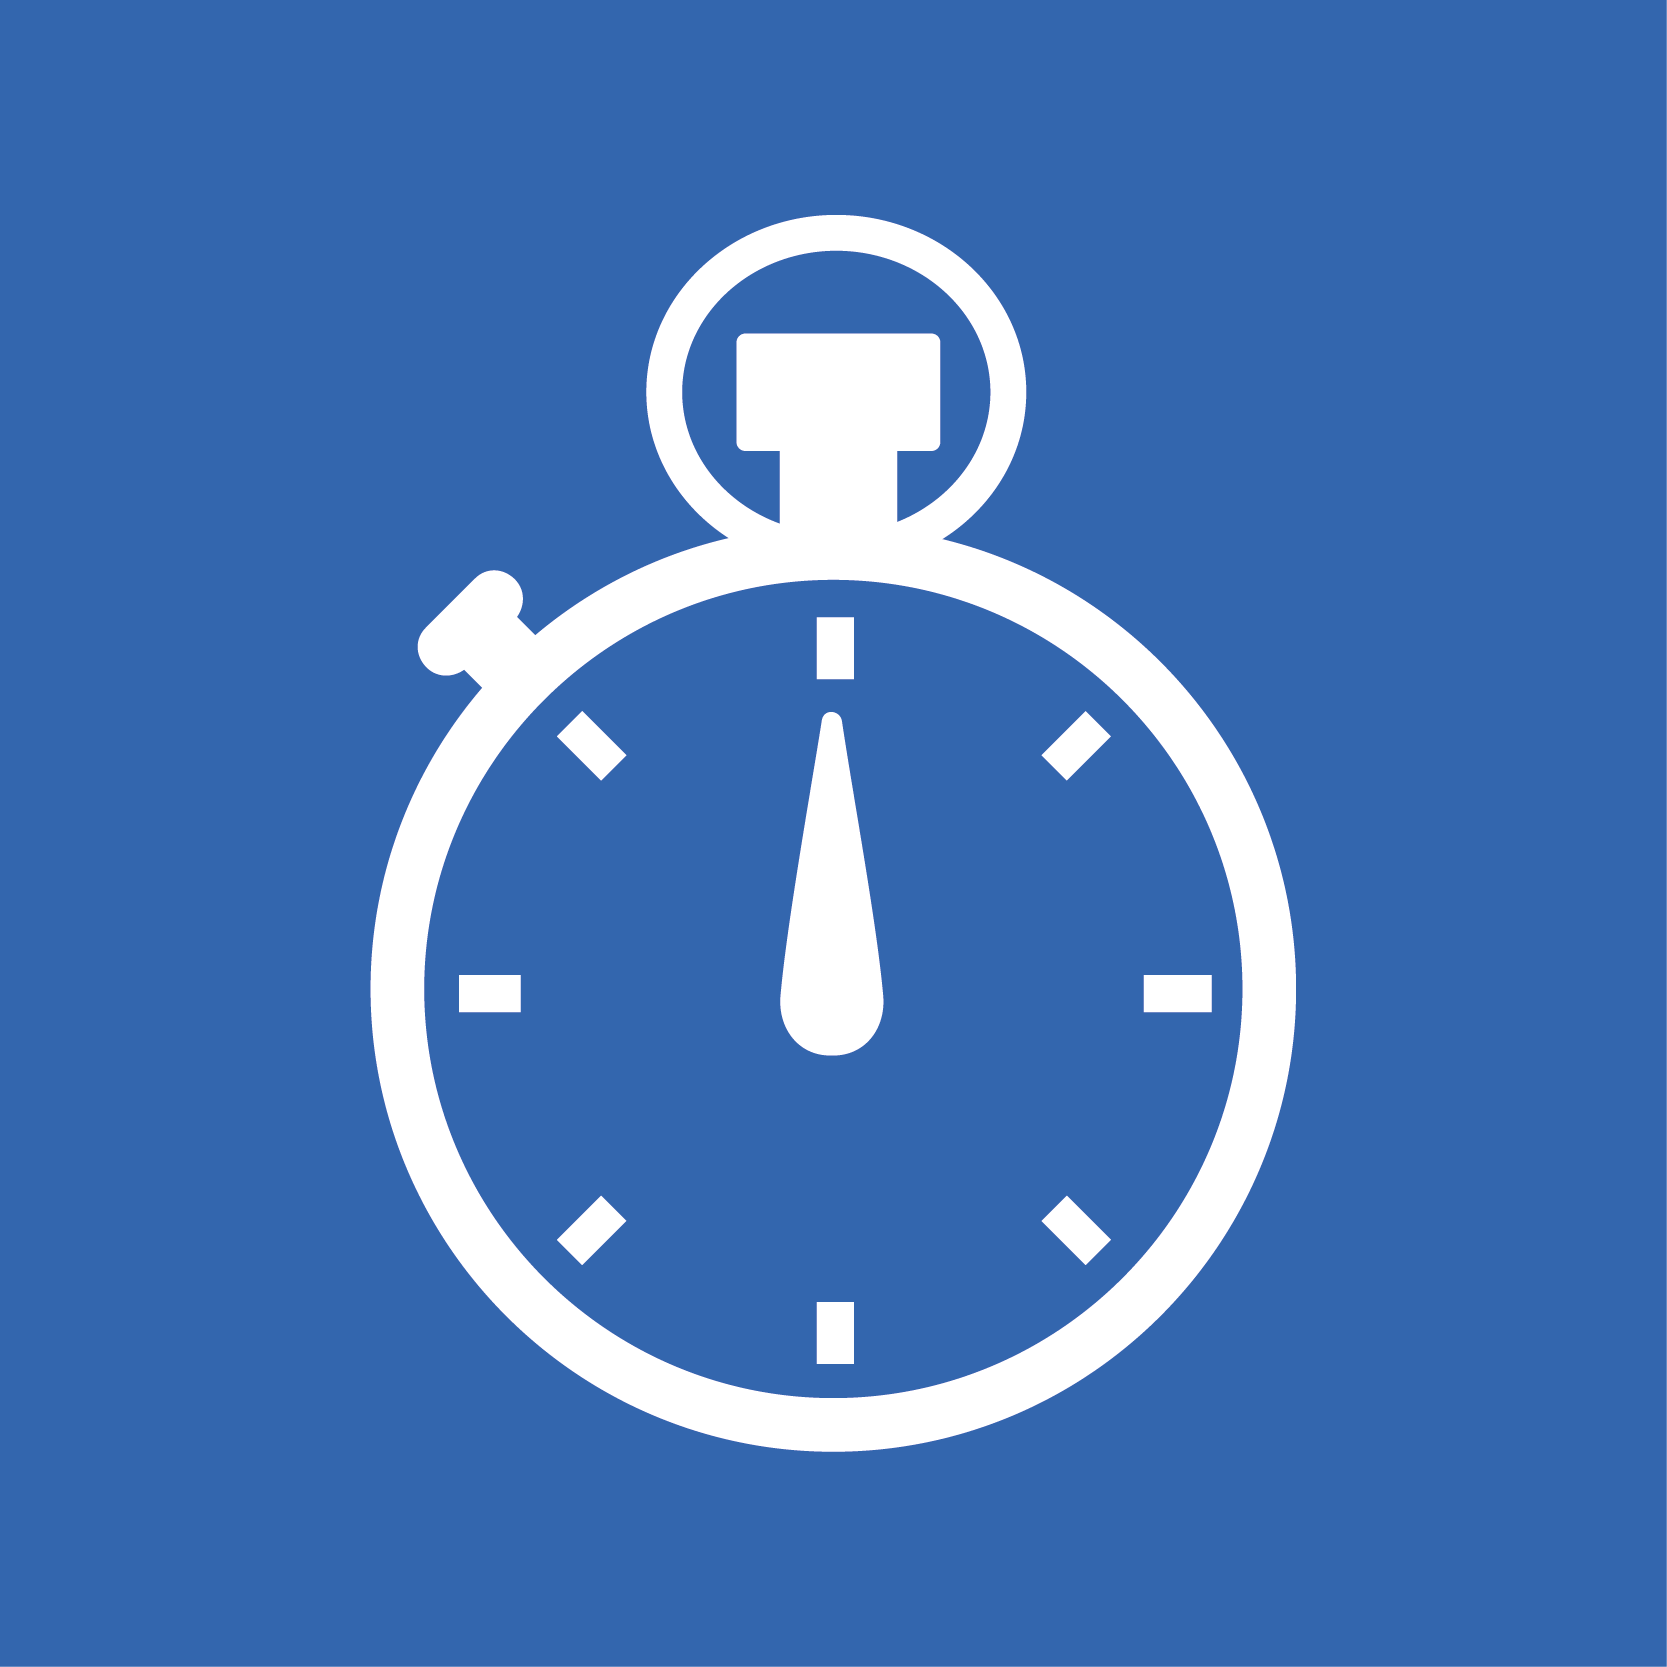 Blue square with a graphic of a stopwatch